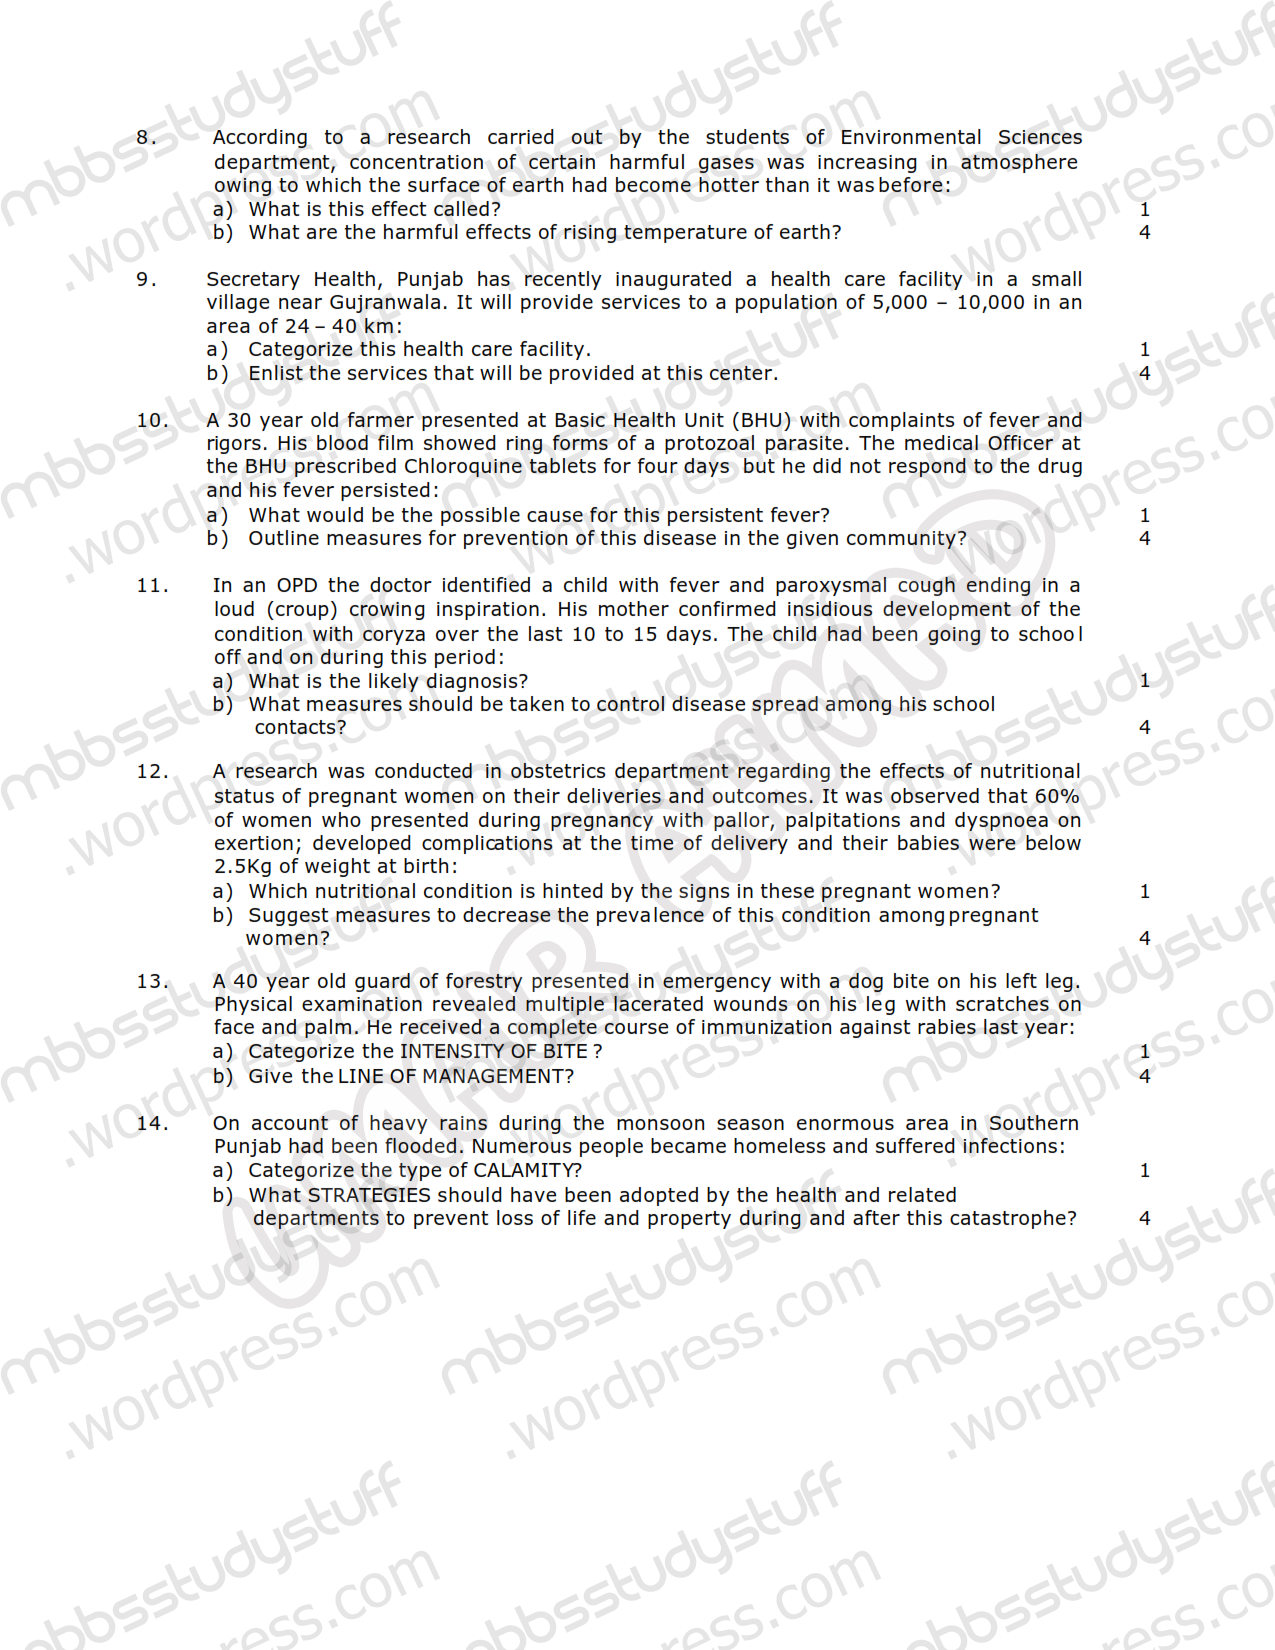 Sample personal statement for graduate school in computer science picture 4